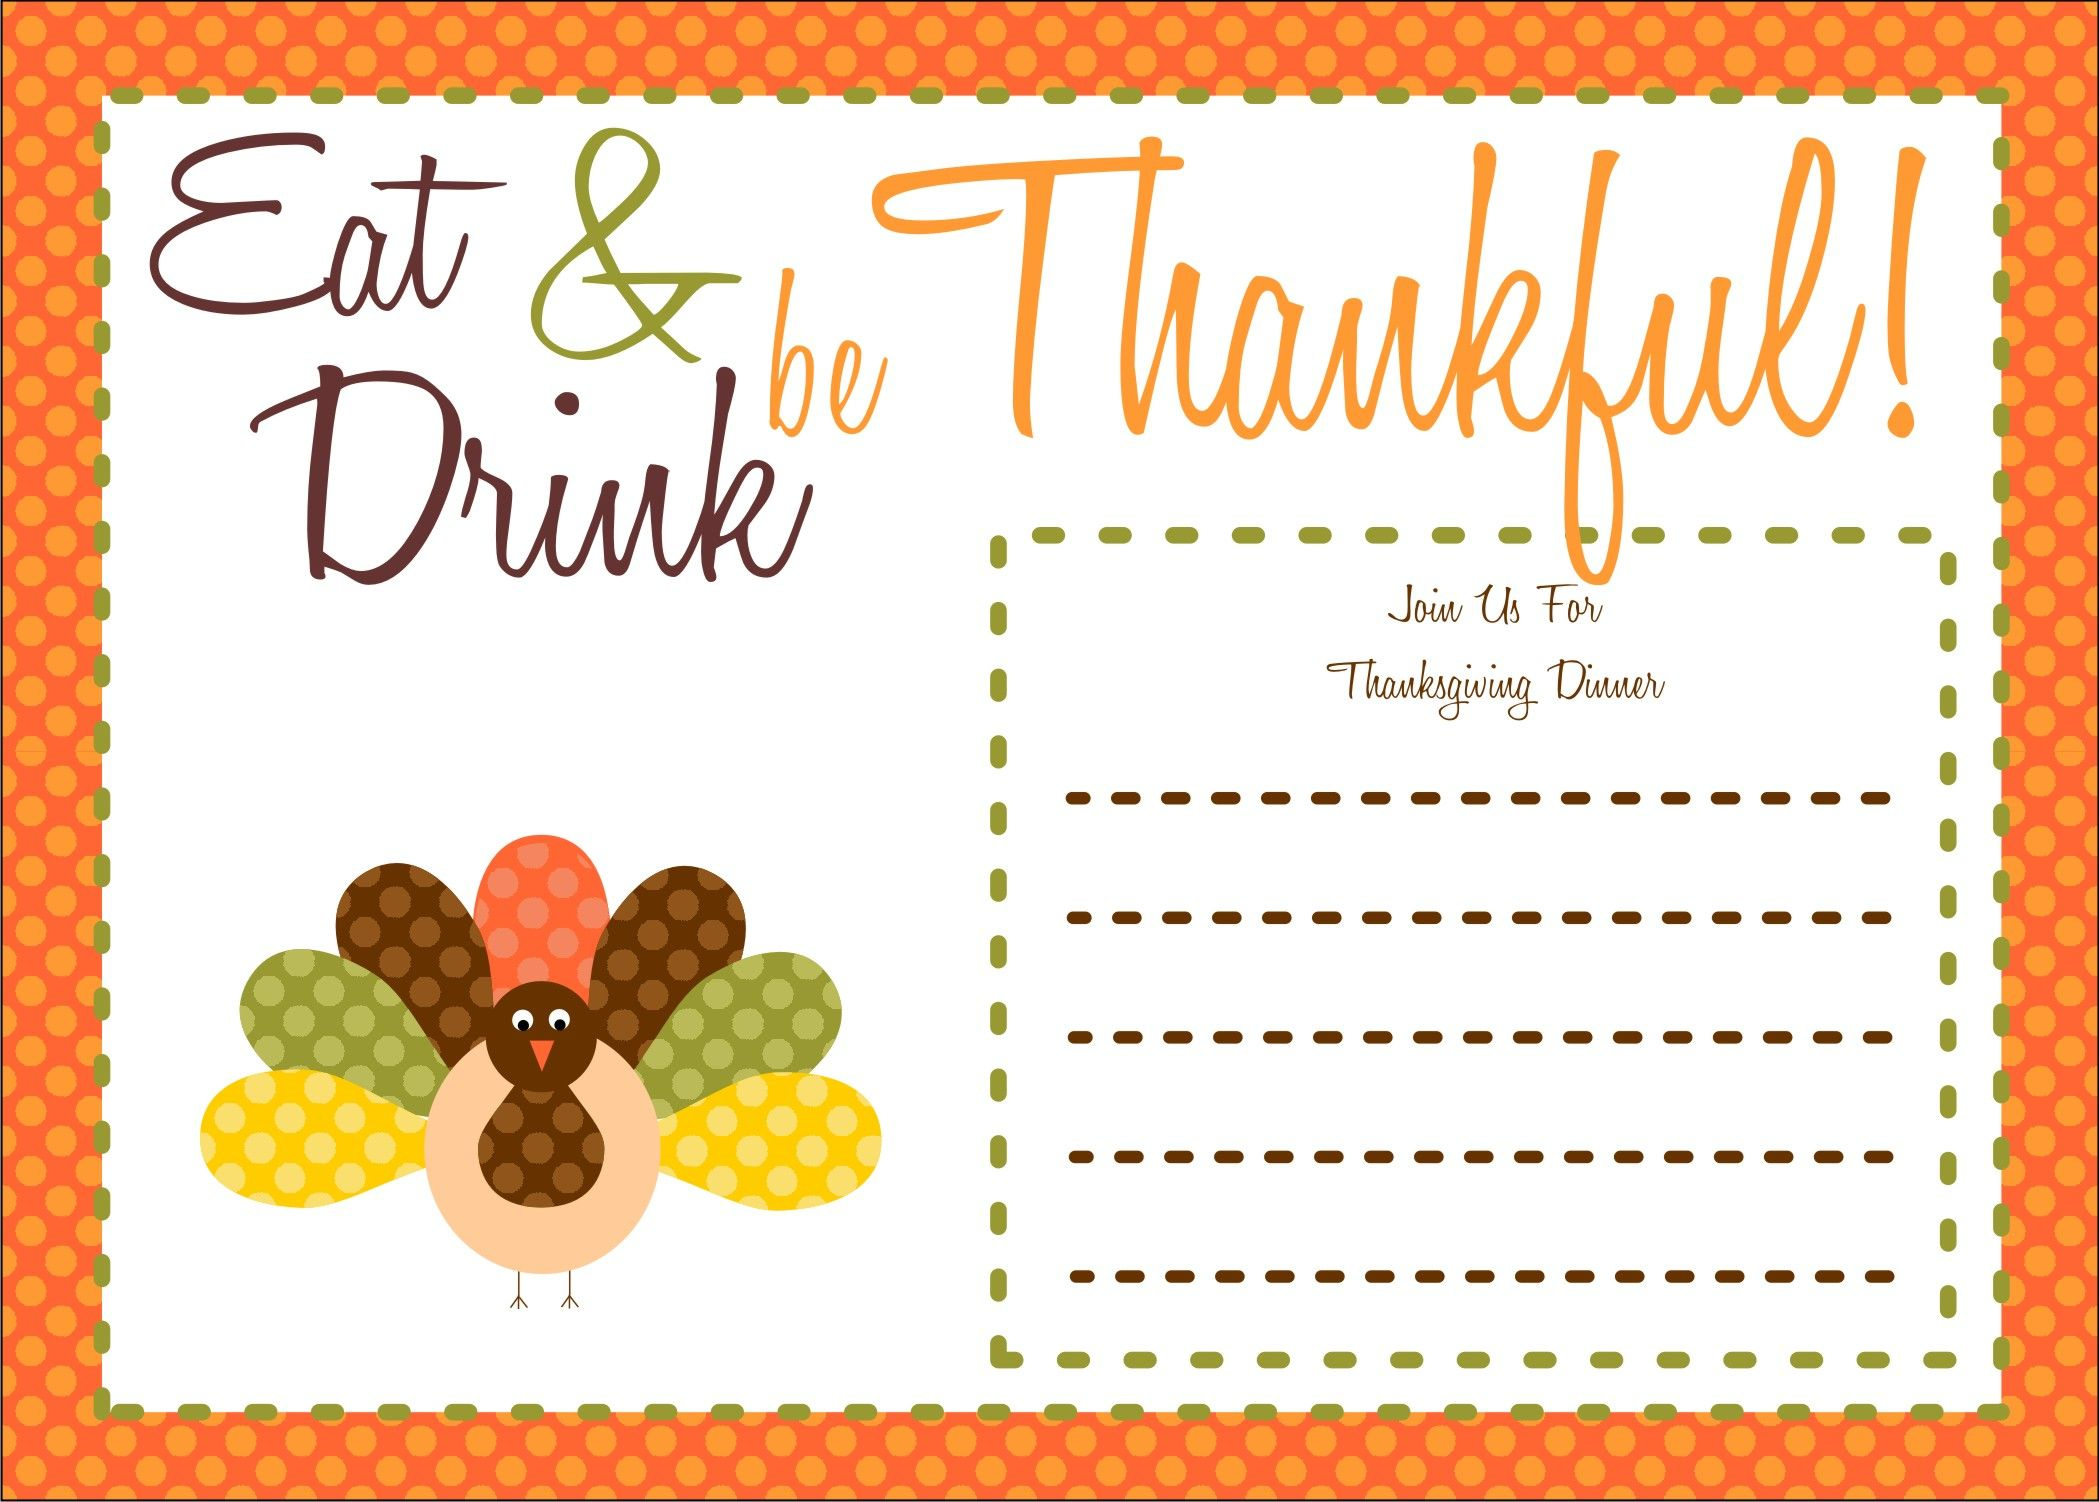 Free Thanksgiving Printables From The Party Bakery | Free Printables - Free Printable Thanksgiving Cards